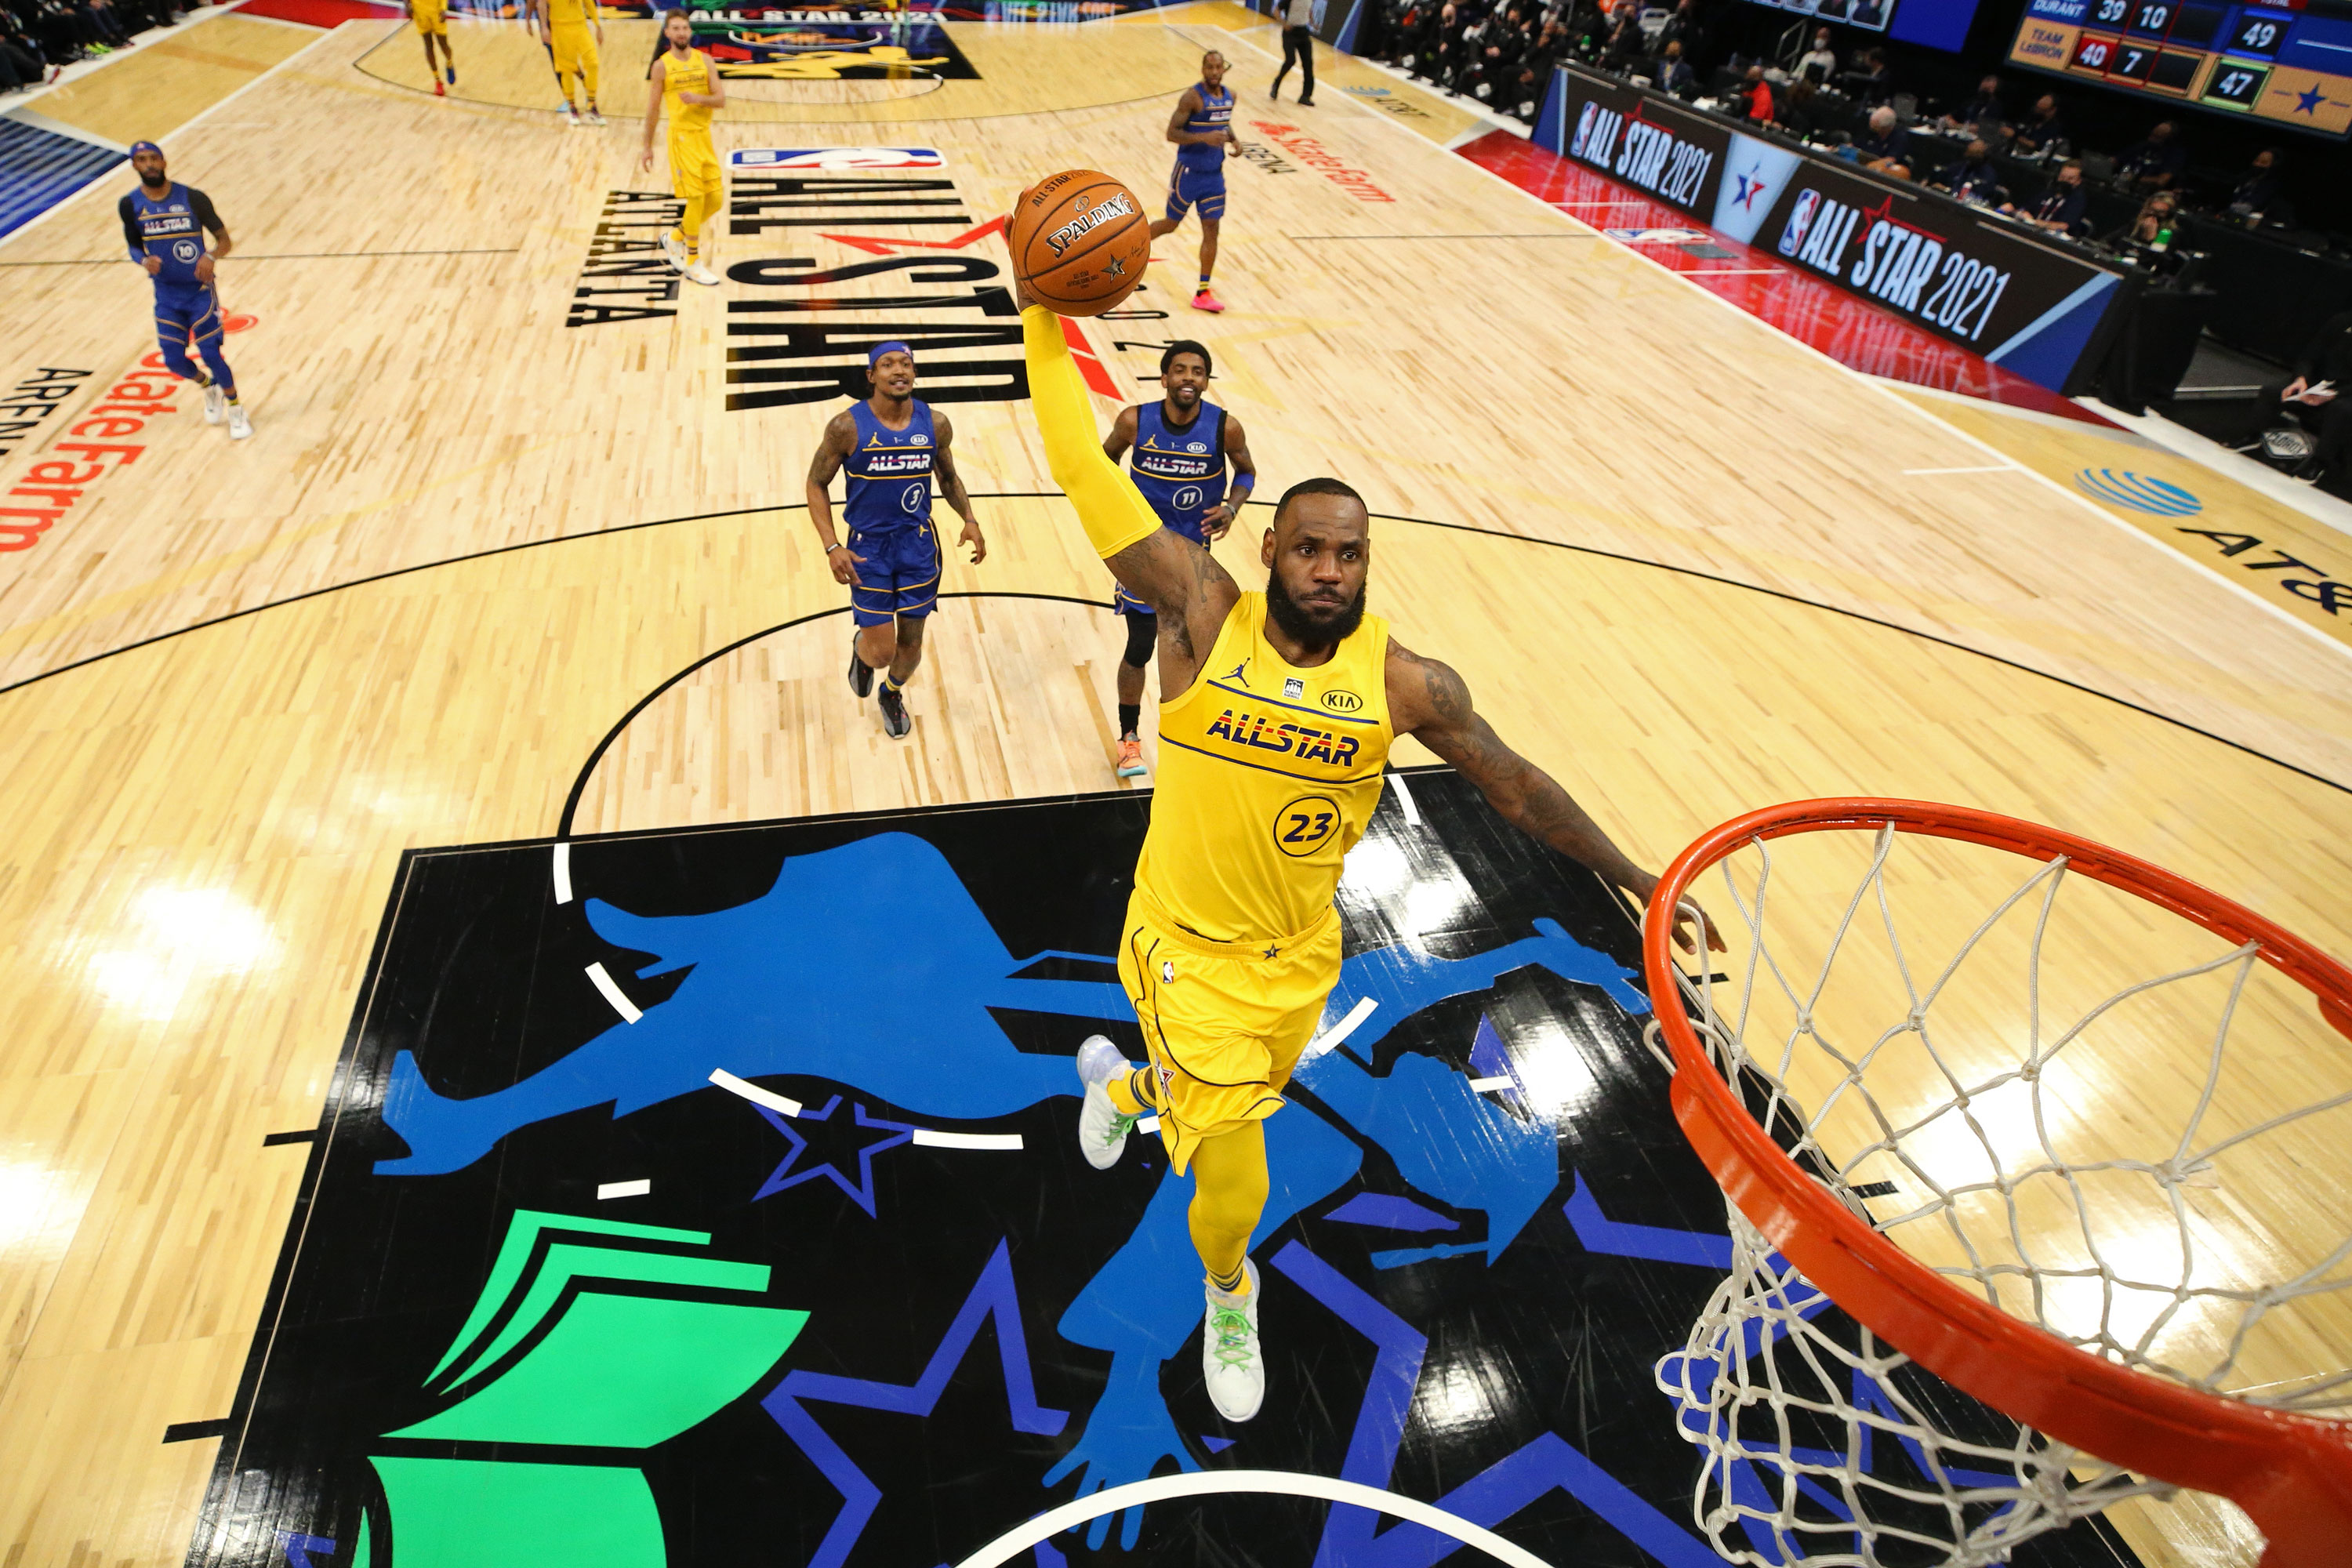 Team LeBron wins NBA All-Star Game, but HBCUs were the real winner of the night